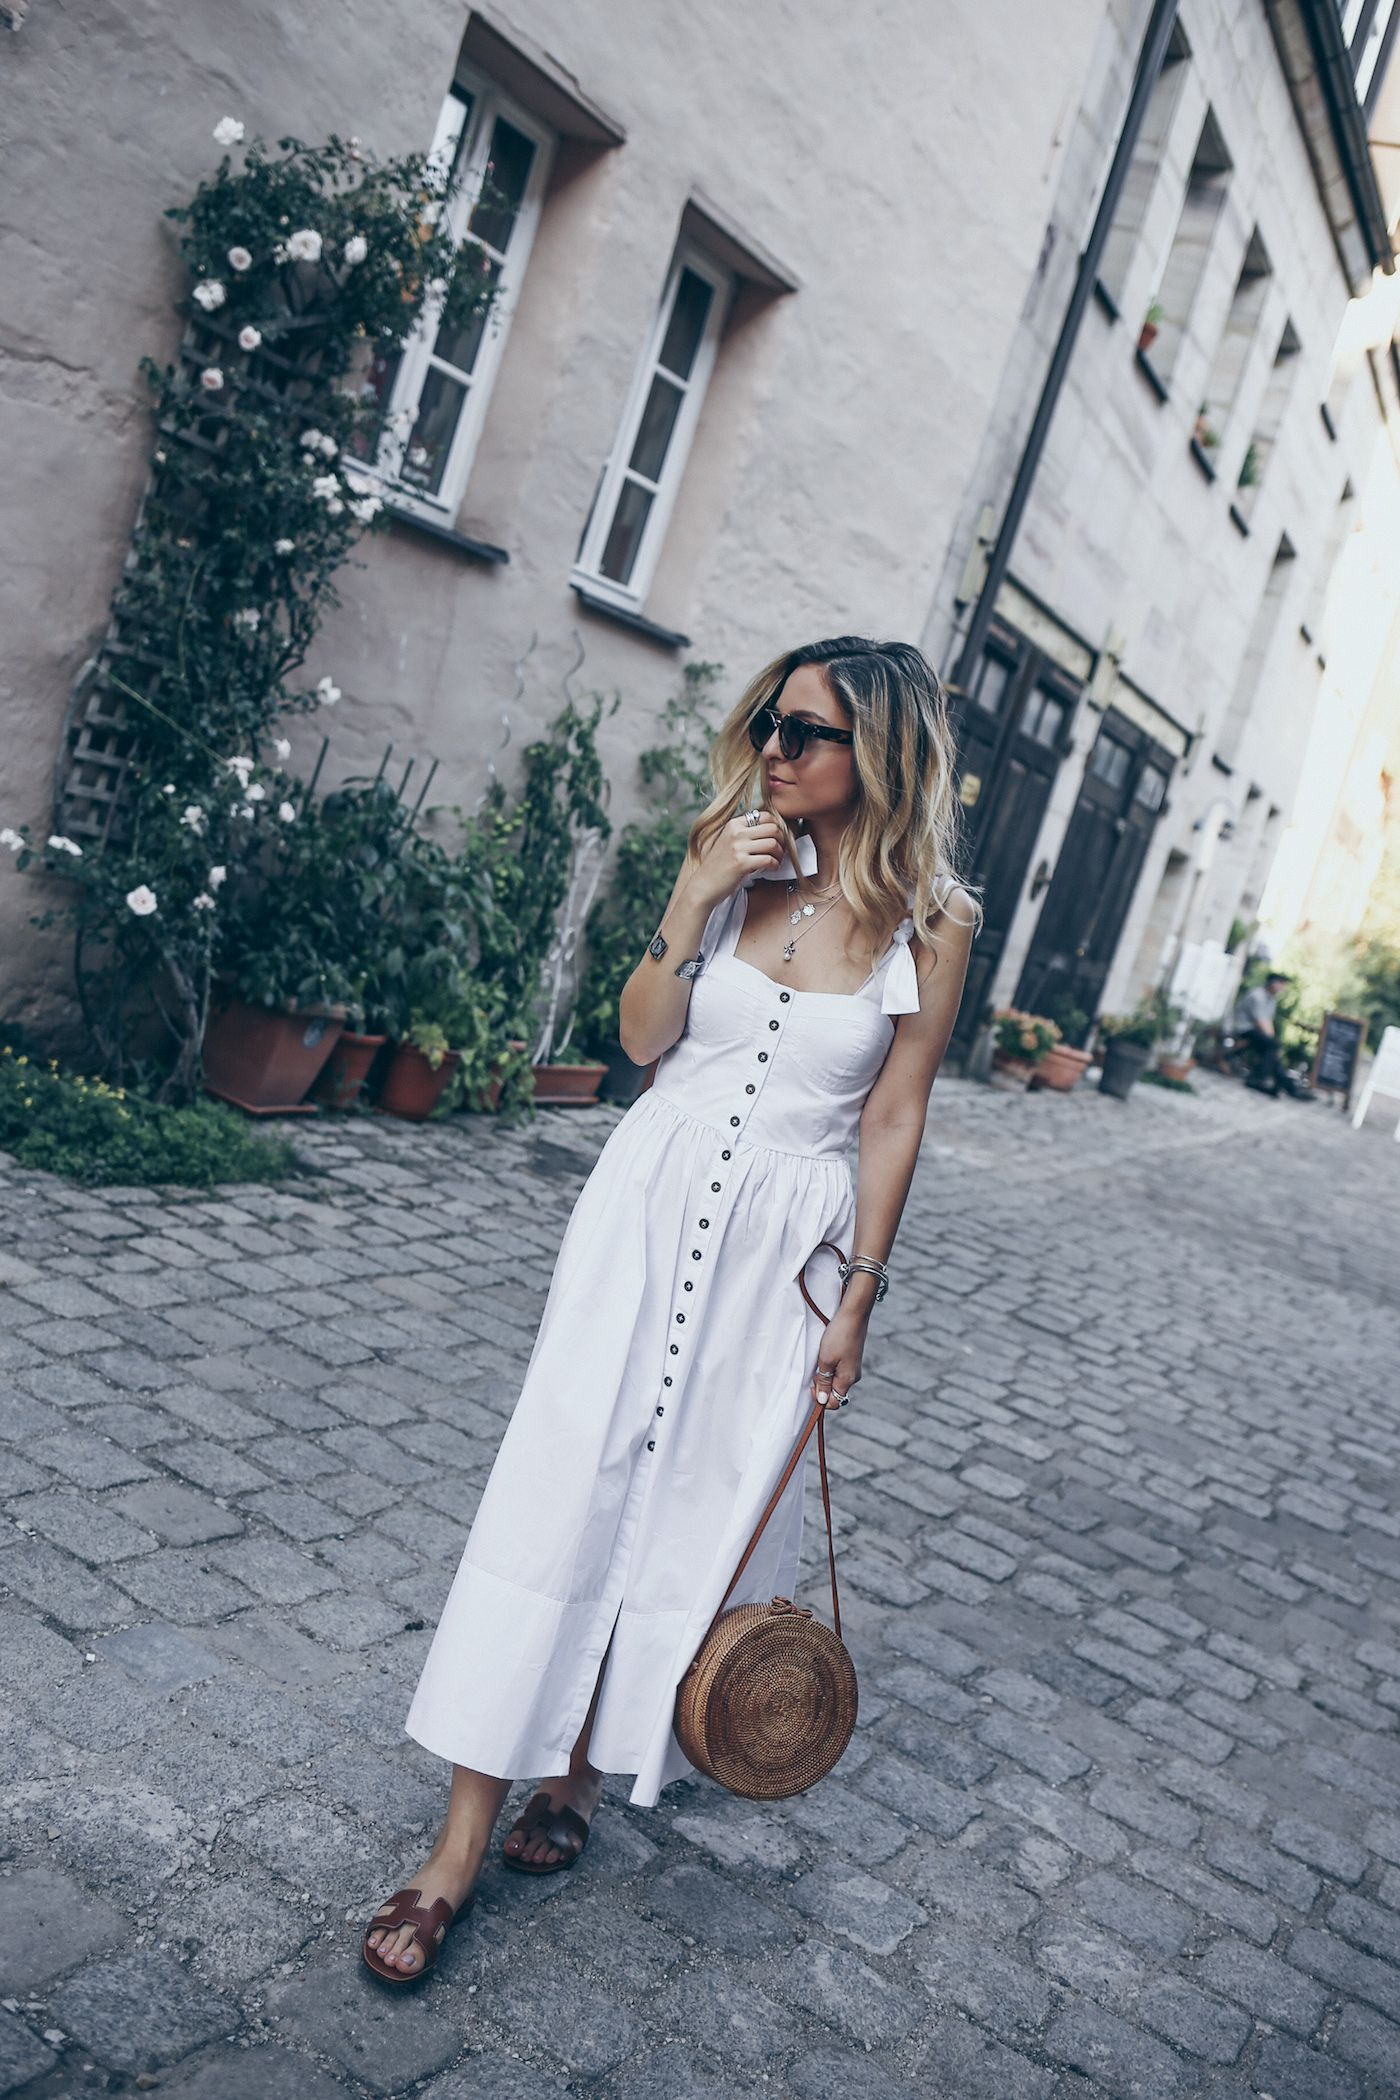 3589ef48b21 Summer maxi dress and basket bag. Hermes Oran Sandals Street Style Outfit  Summer Casual Minimal Chic Fashion All White